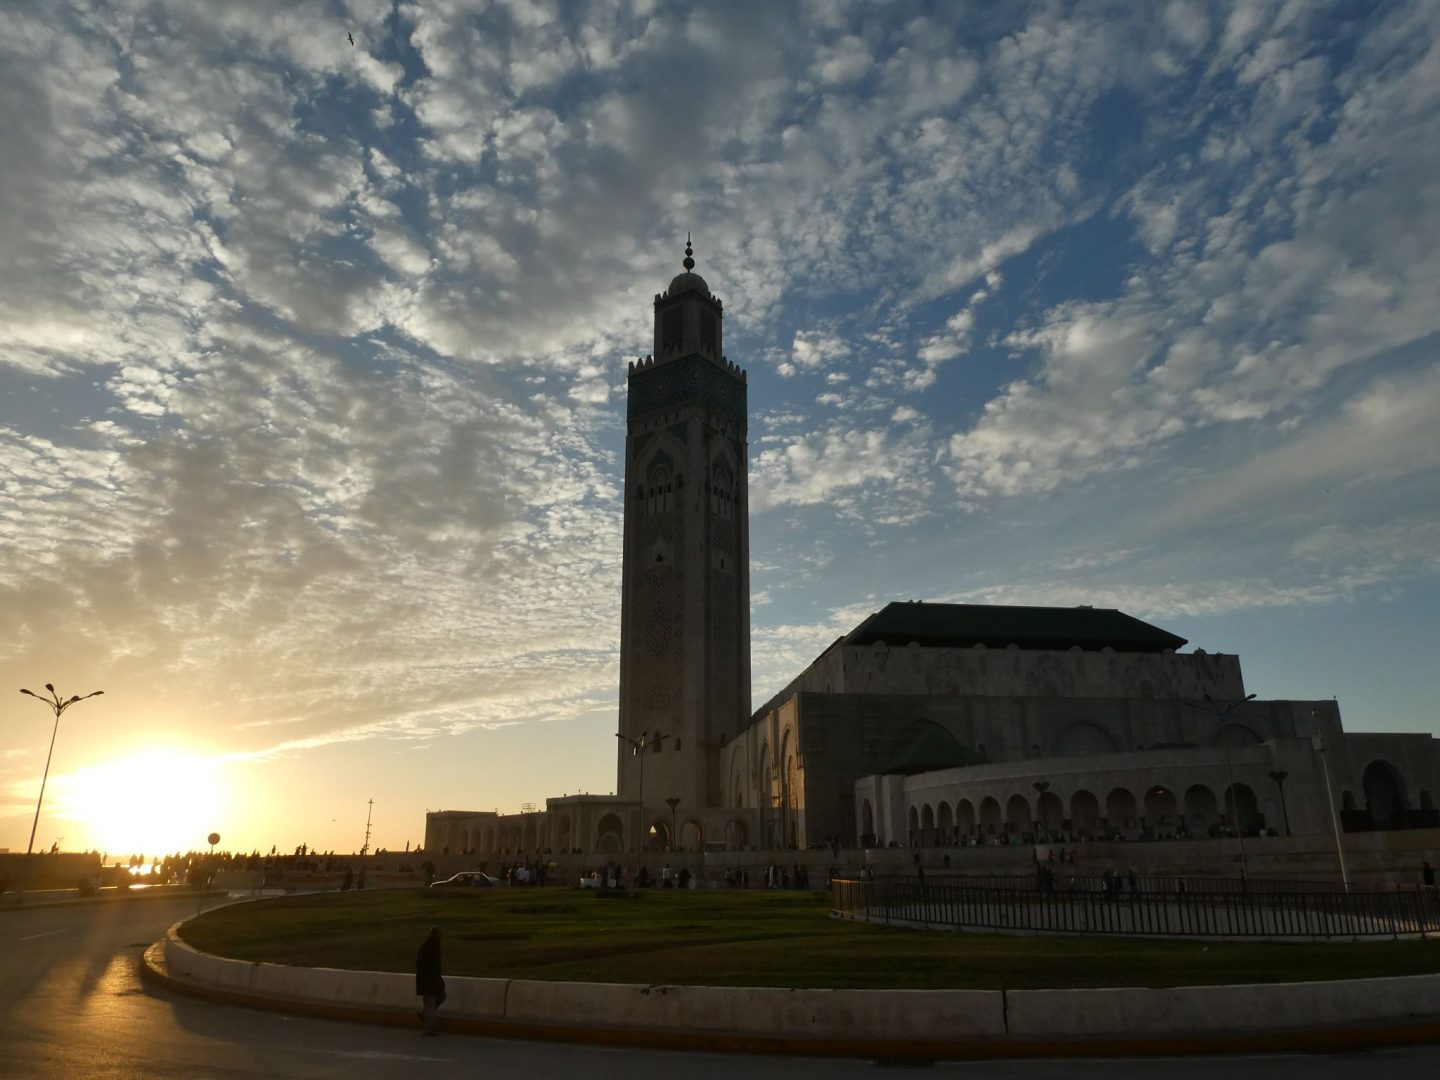 Casablanca (21 and 22 October 2018)